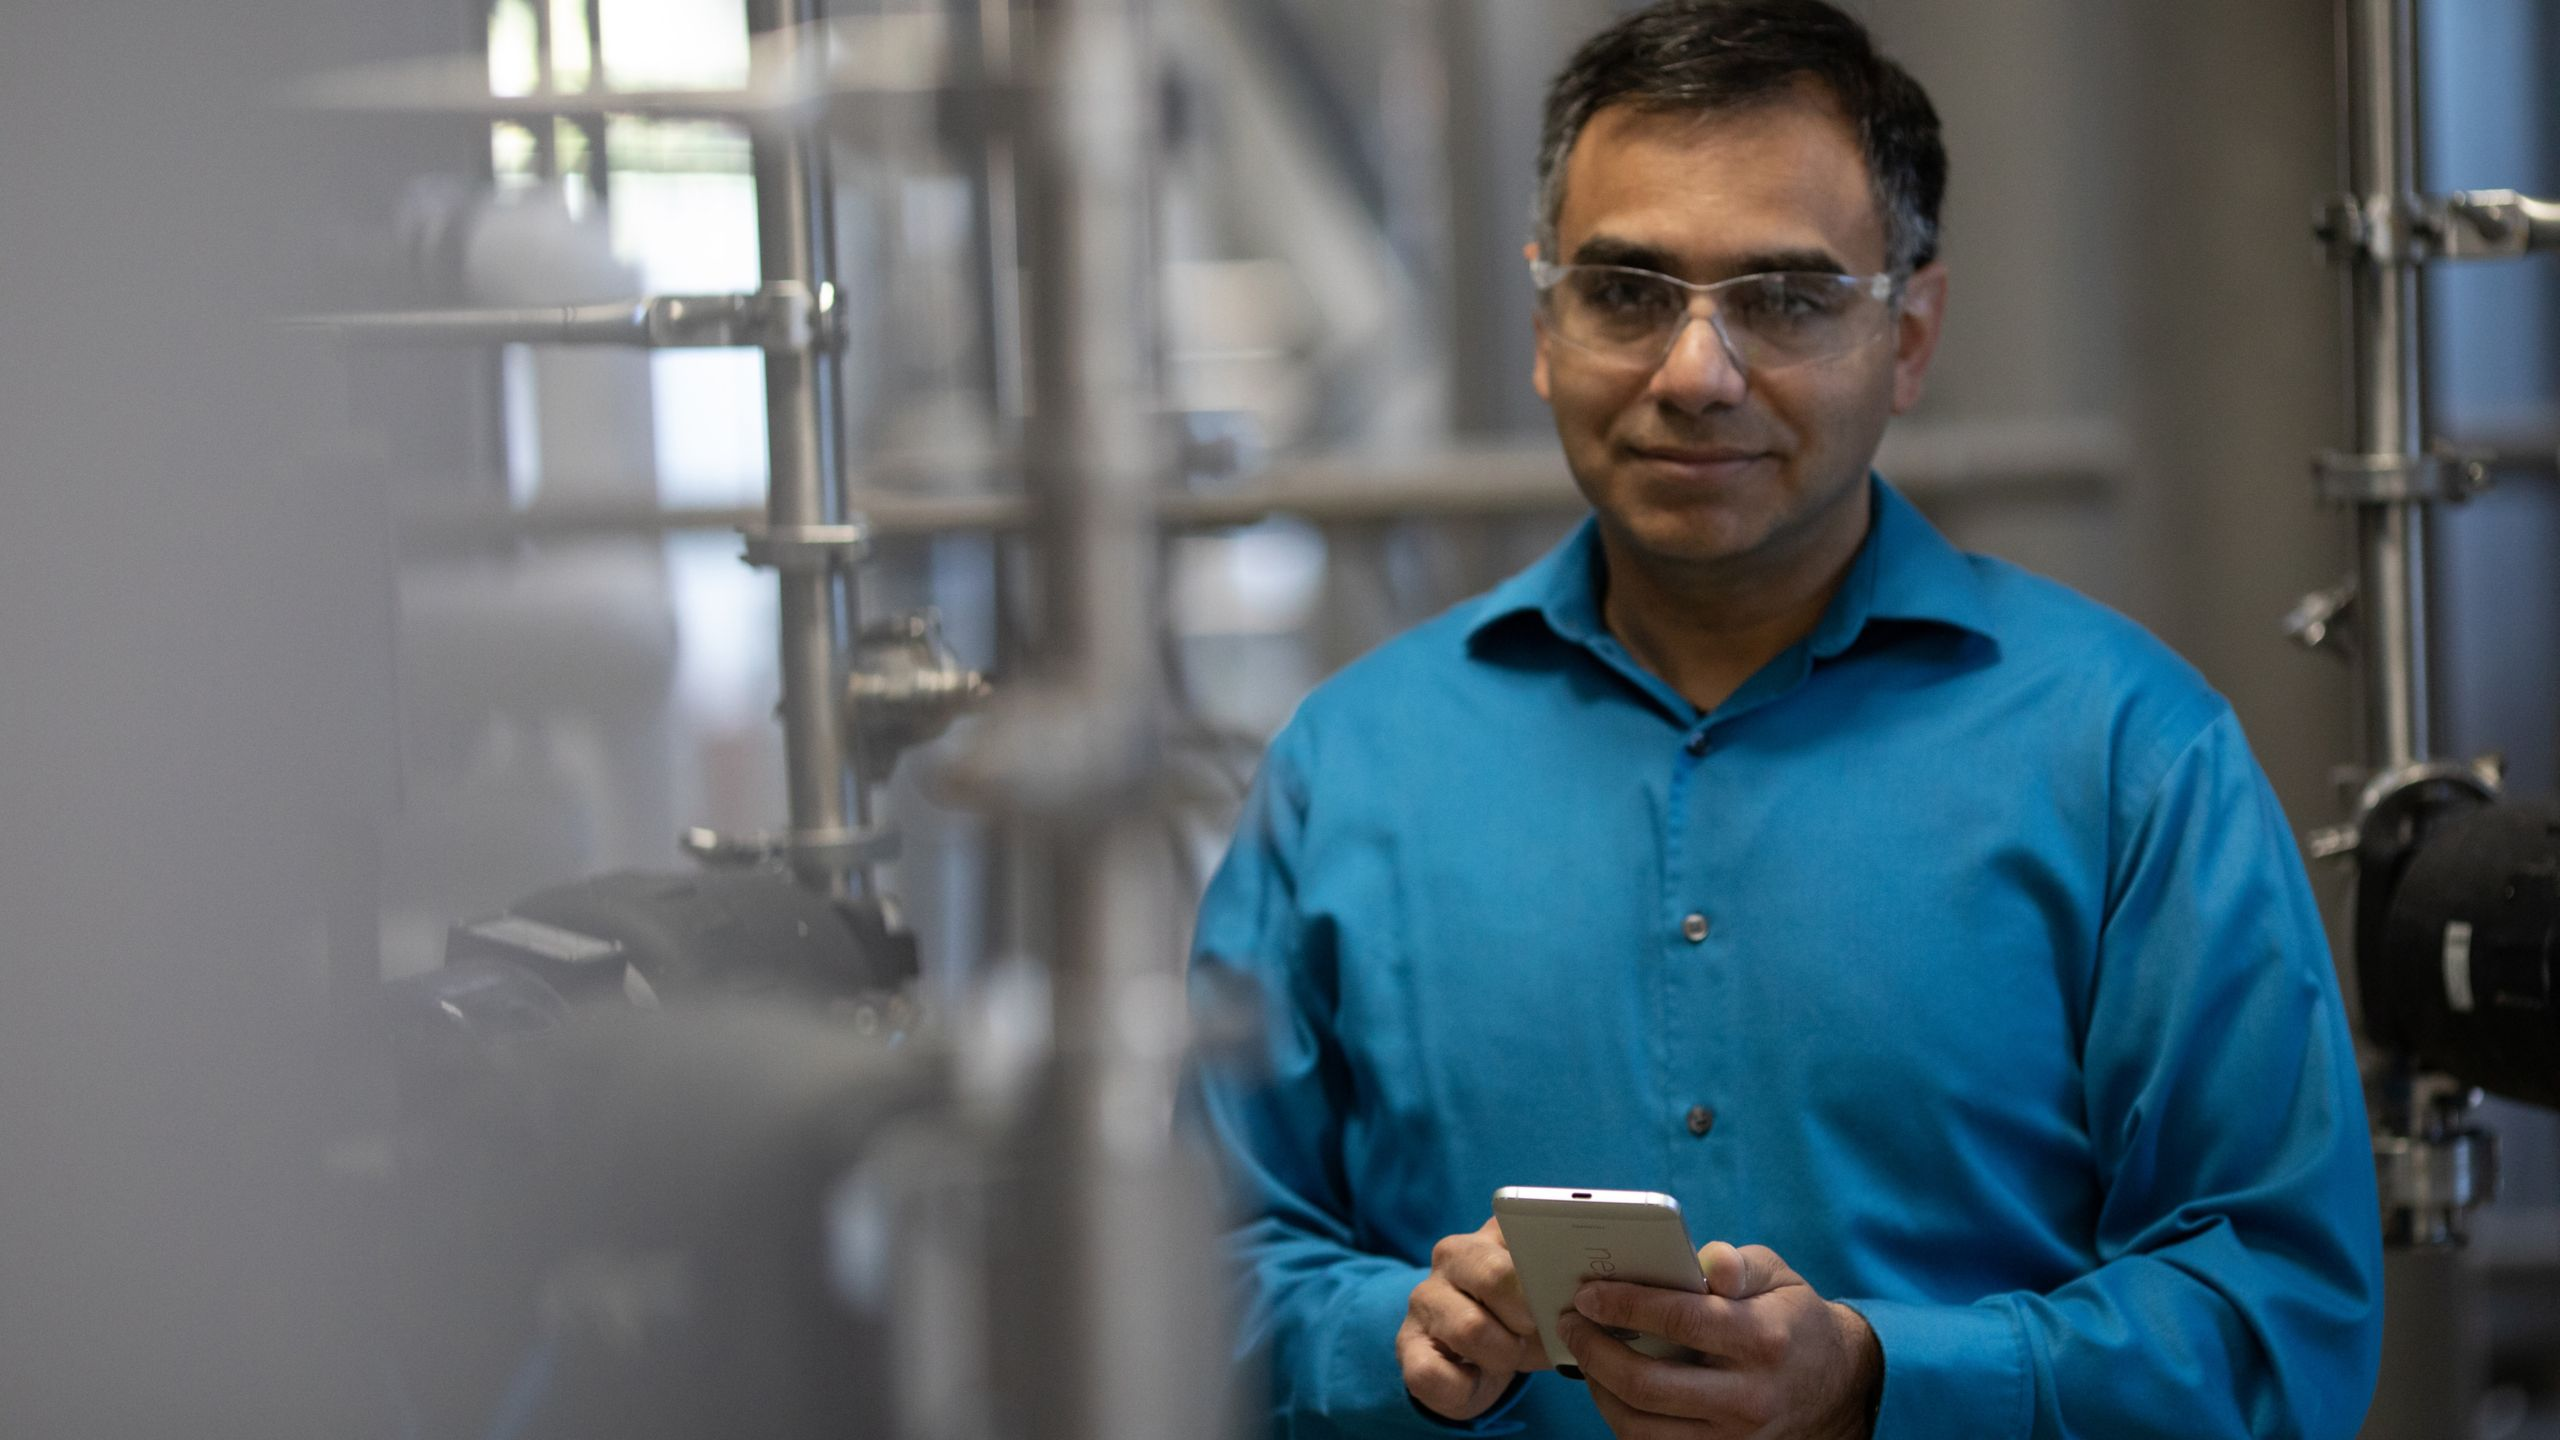 Engineer wearing a blue shirt and safety glasses in a factory looking forward holding his mobile phone